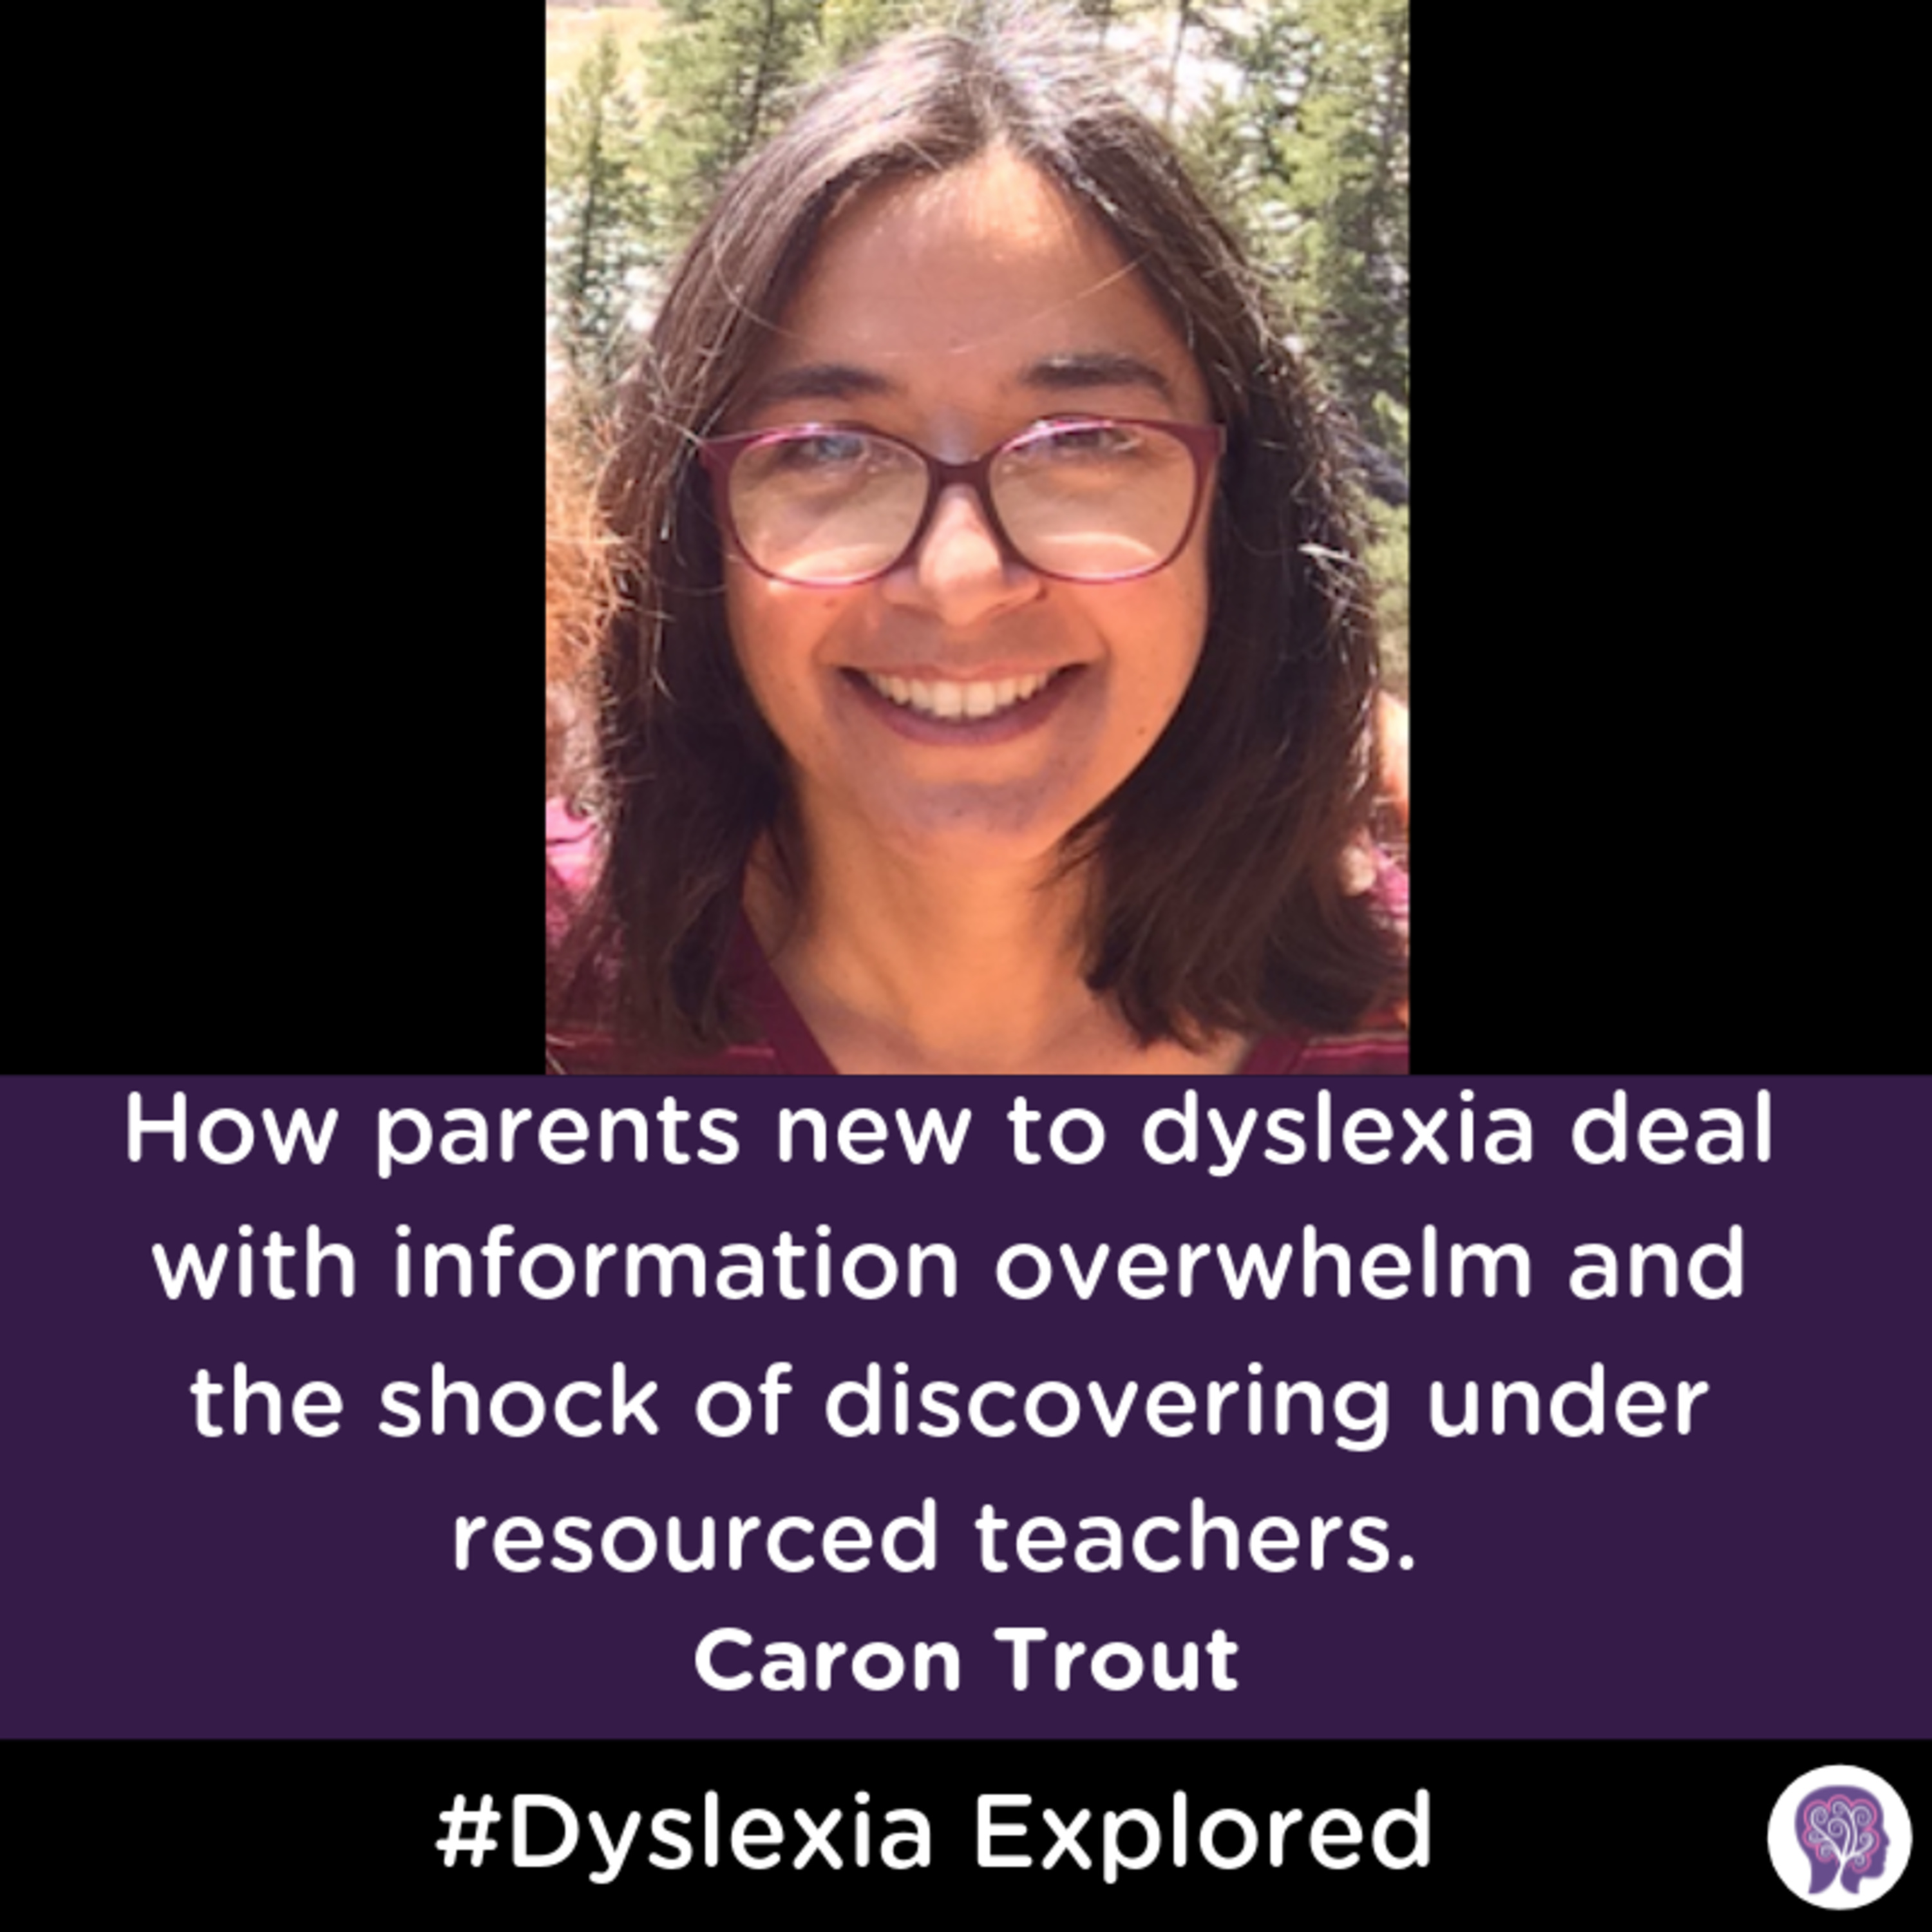 #38 How parents new to dyslexia deal with information overwhelm and the shock of discovering under resourced teachers with Caron Trout